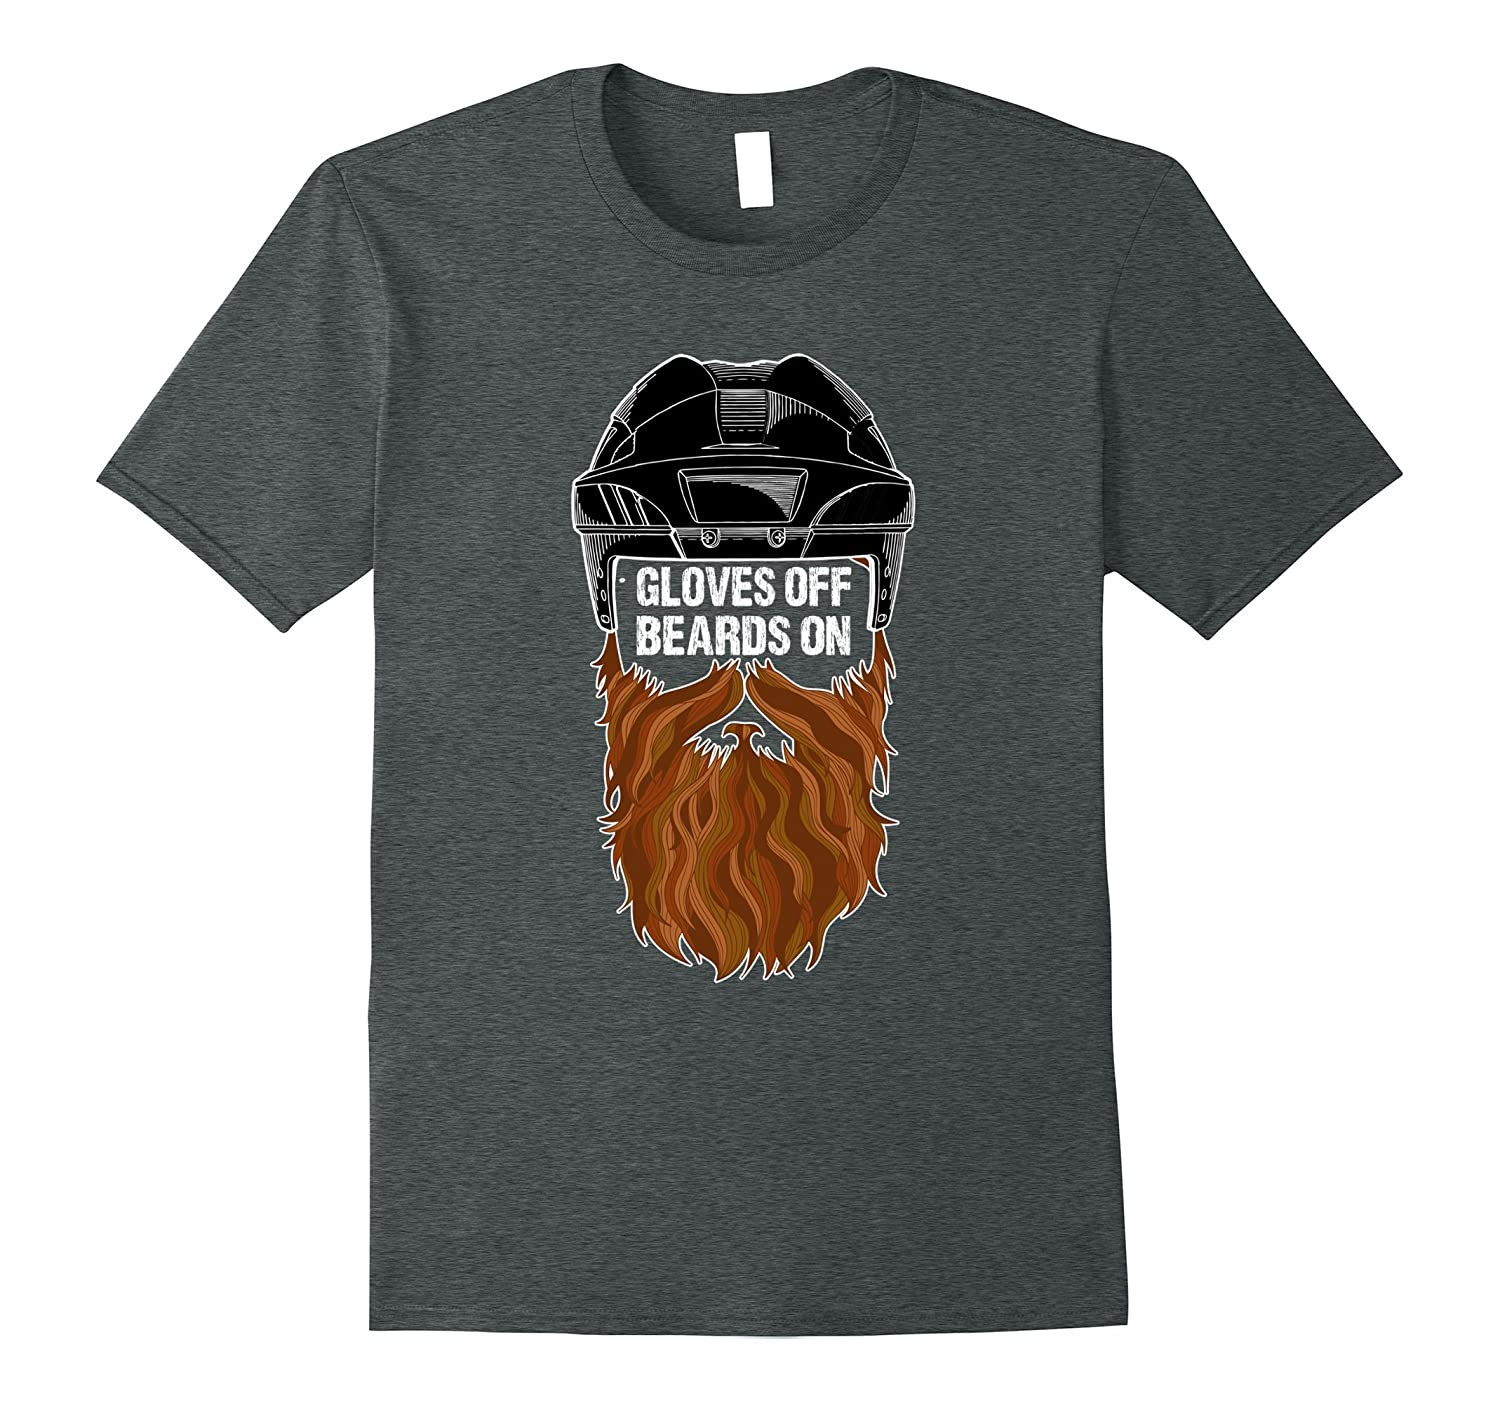 Beards On Gloves Off Ice Hockey Playoff Beard Tshirt-FL